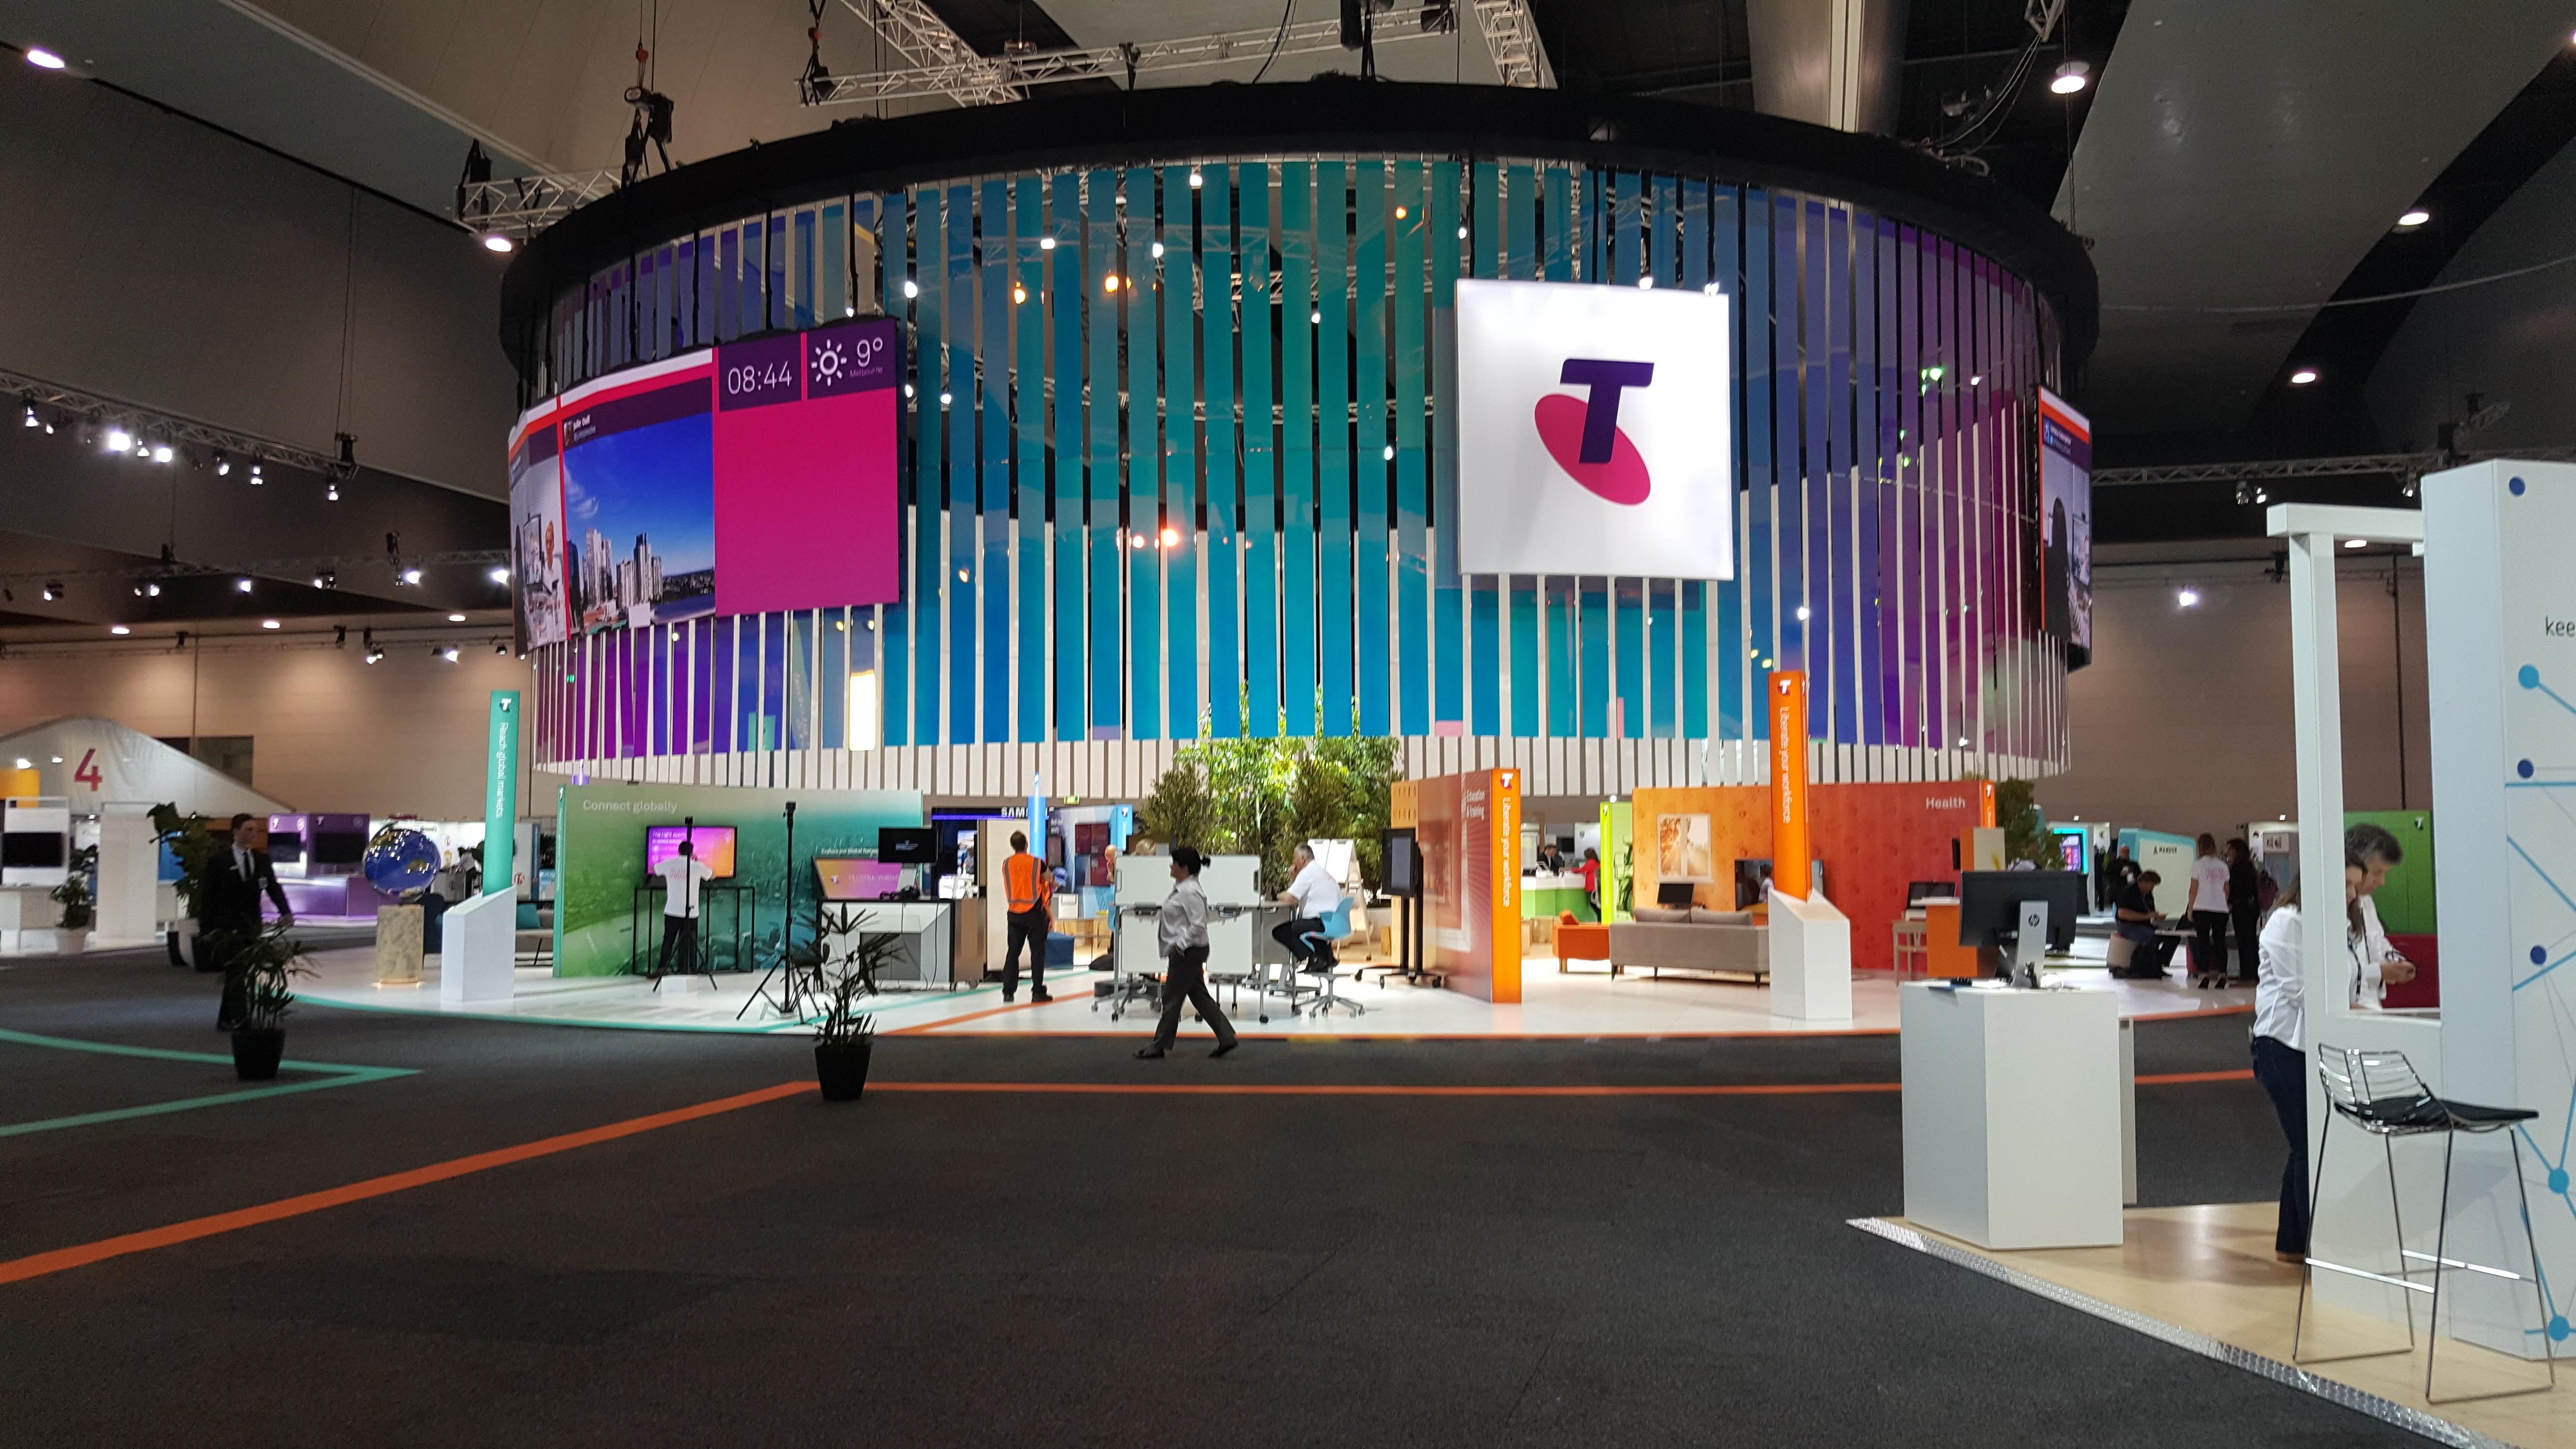 Visit Whispir at Telstra Vantage